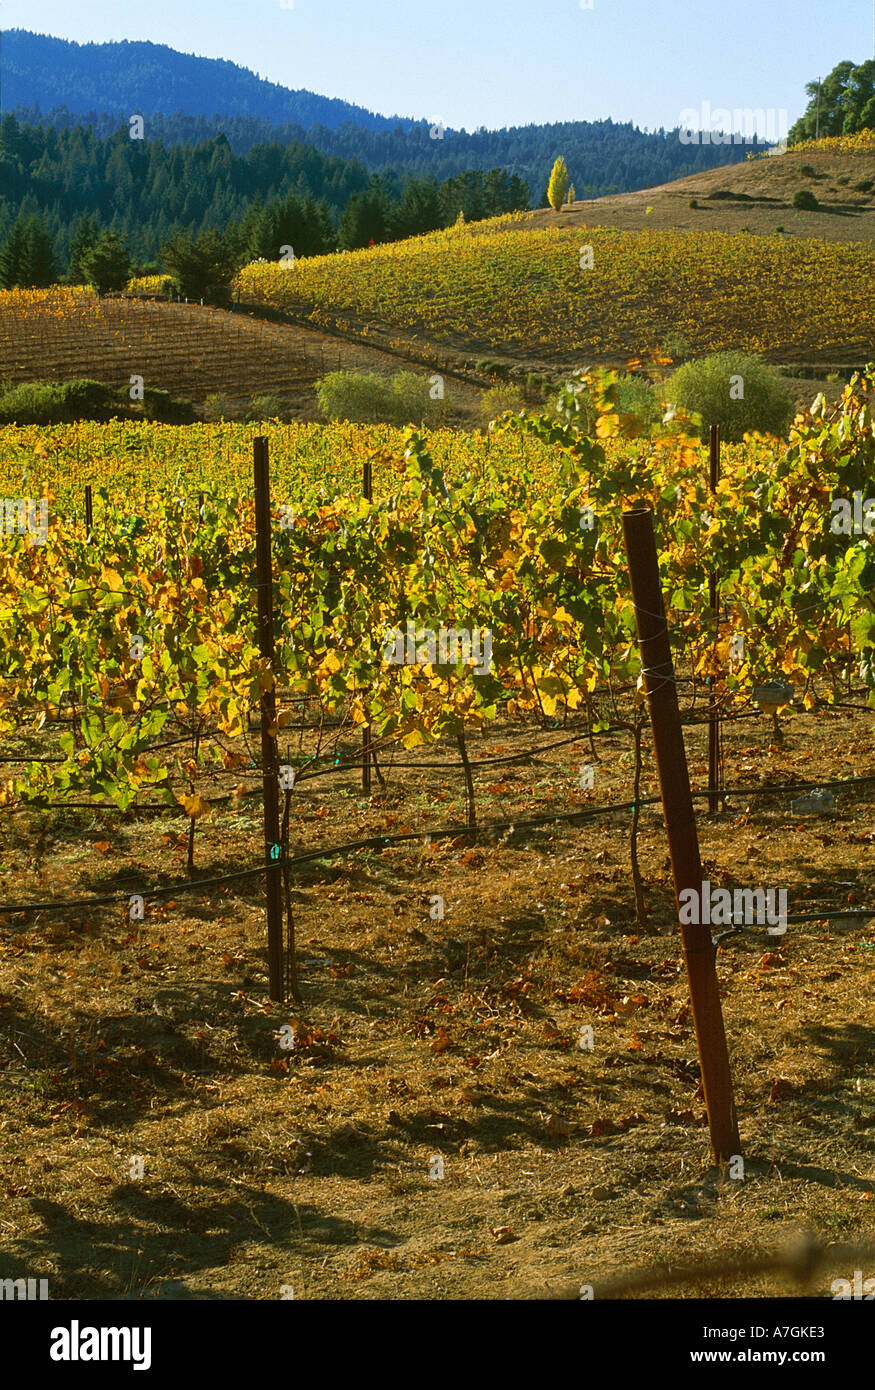 USA, California, Anderson Valley, wine country, fall color in a vineyard - Stock Image